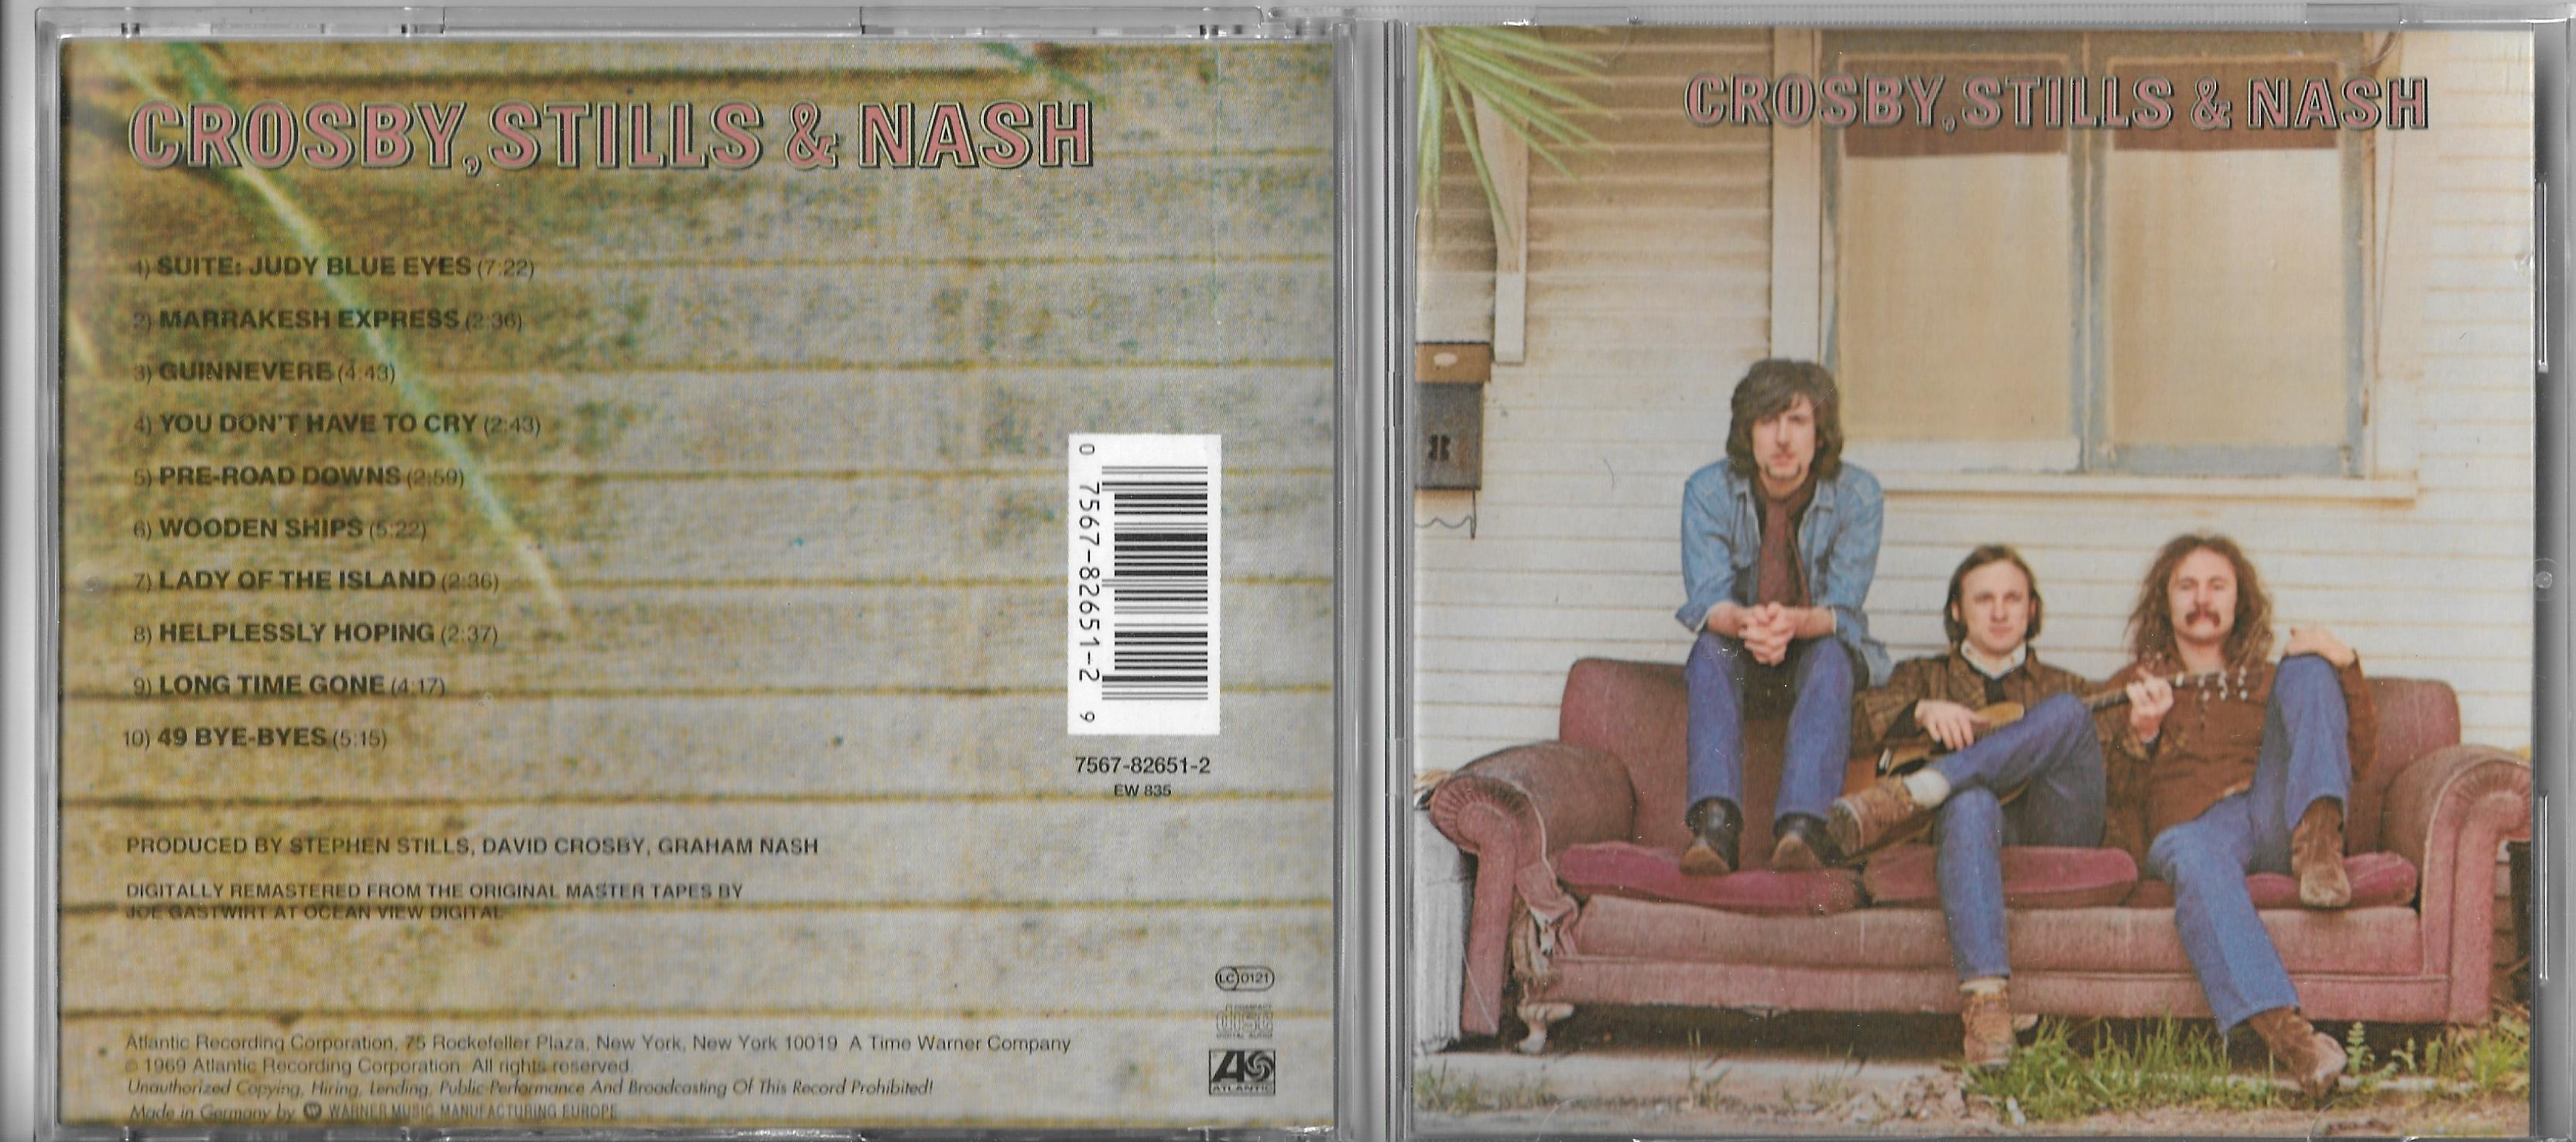 CROSBY, STILLS, NASH & YOUNG - Looking forward PROMO 2-TRACK CARD SLEEVE - CD single